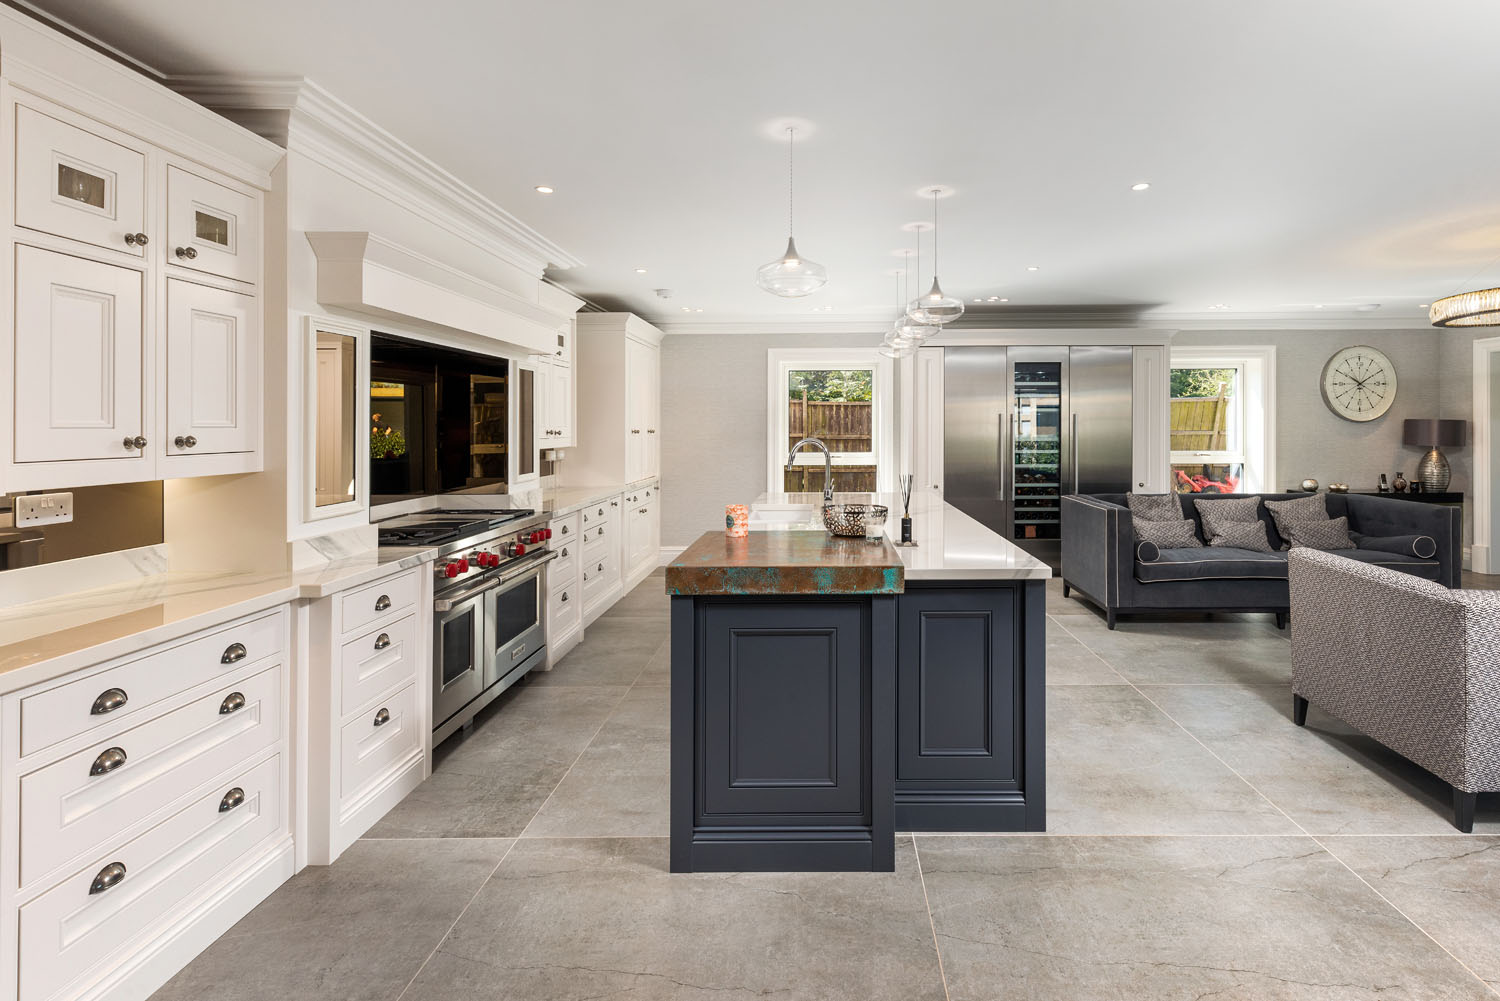 Image of 11 in Dekton Flooring and Kitchen Worksurfaces Add Timeless Elegance to This Classic Family Home - Cosentino